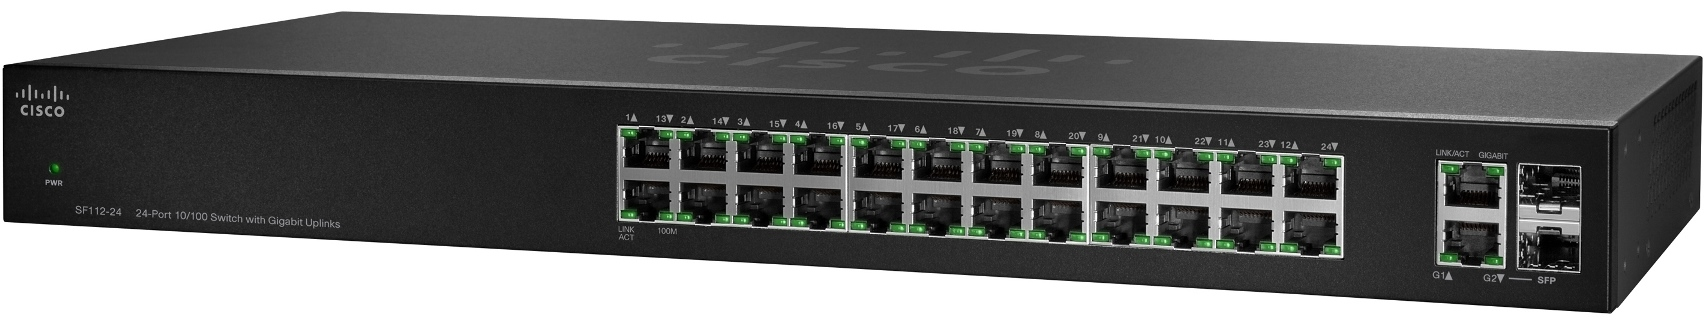 Cisco SF112-24-EU, 24x100 Switch with Gb Uplinks